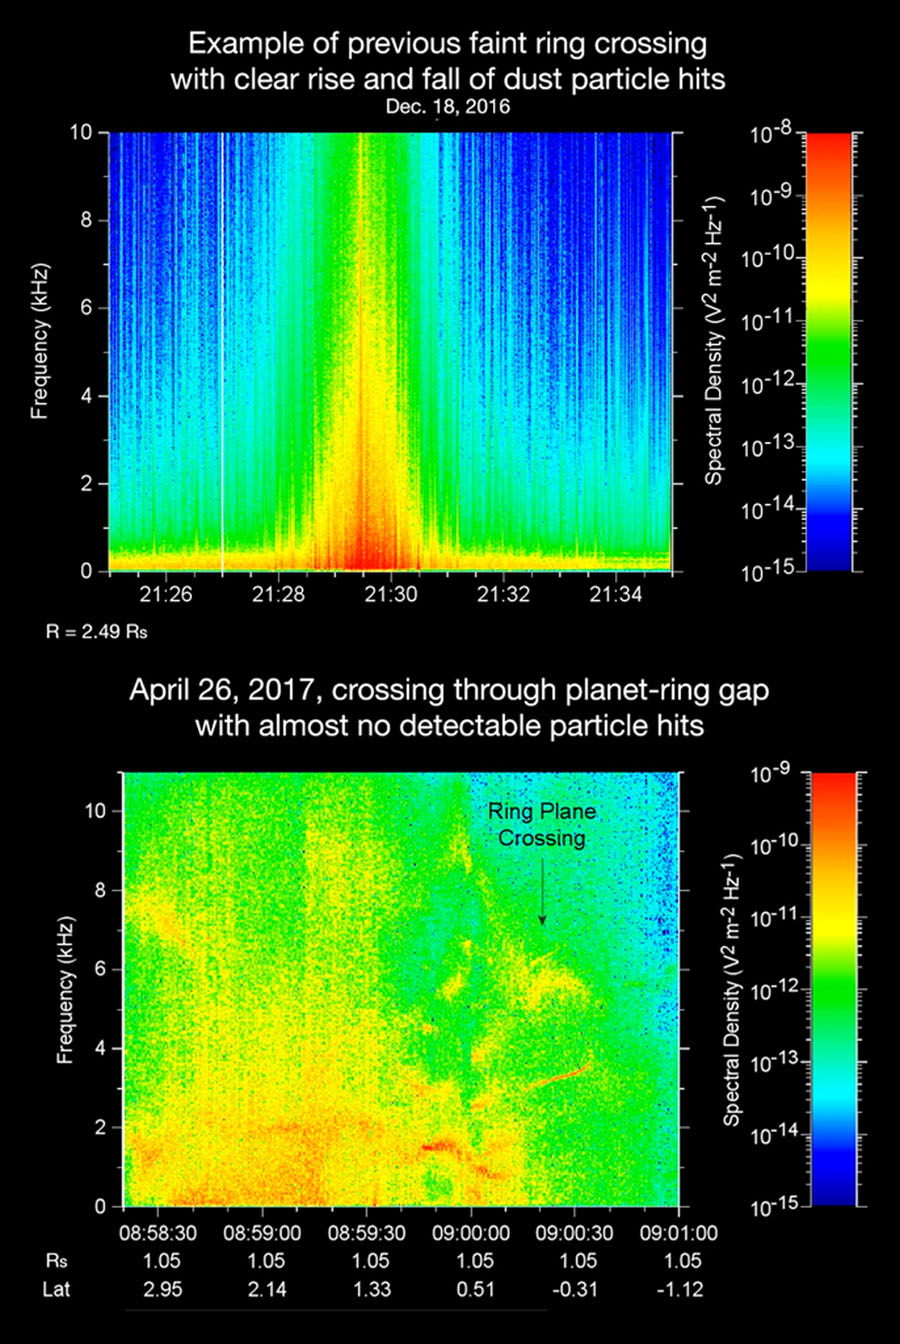 Comparison of data from NASA's Cassini's radio and plasma science instrument, which can detect ring particles striking the spacecraft as it crosses the plane of the rings, on Dec. 18, 2016 (at top) and on April 26, 2017 (at bottom).